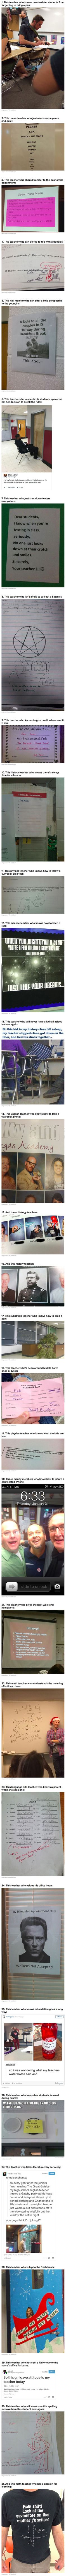 Here are some funny and nerdy teachers who make school interesting.